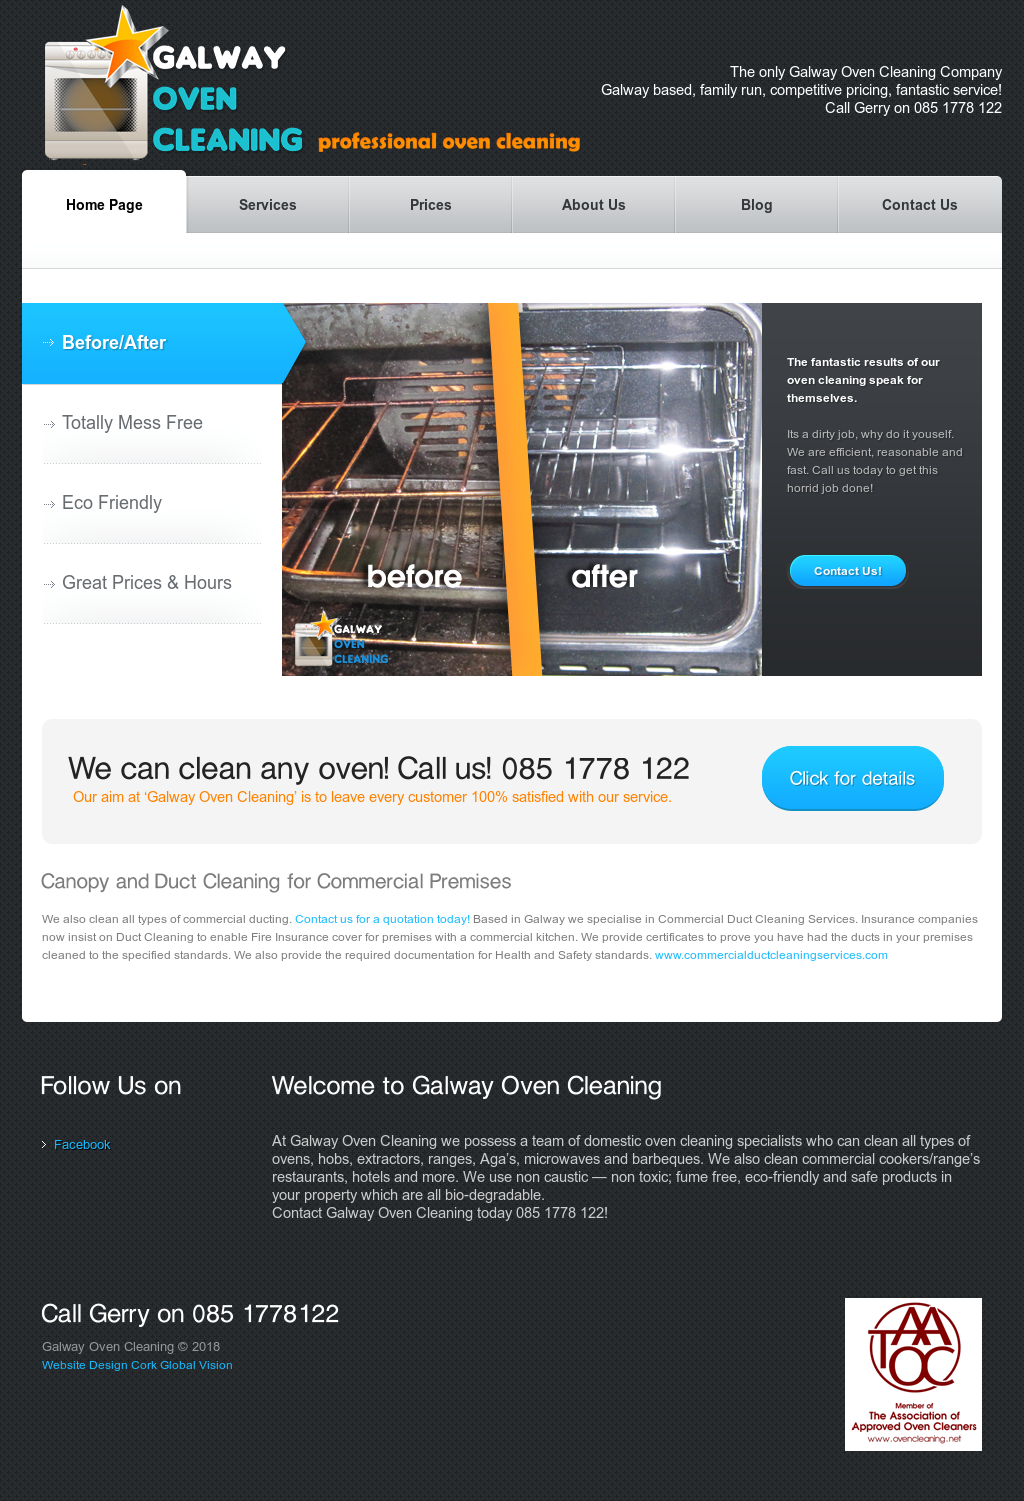 Galway Oven Cleaning Competitors, Revenue and Employees